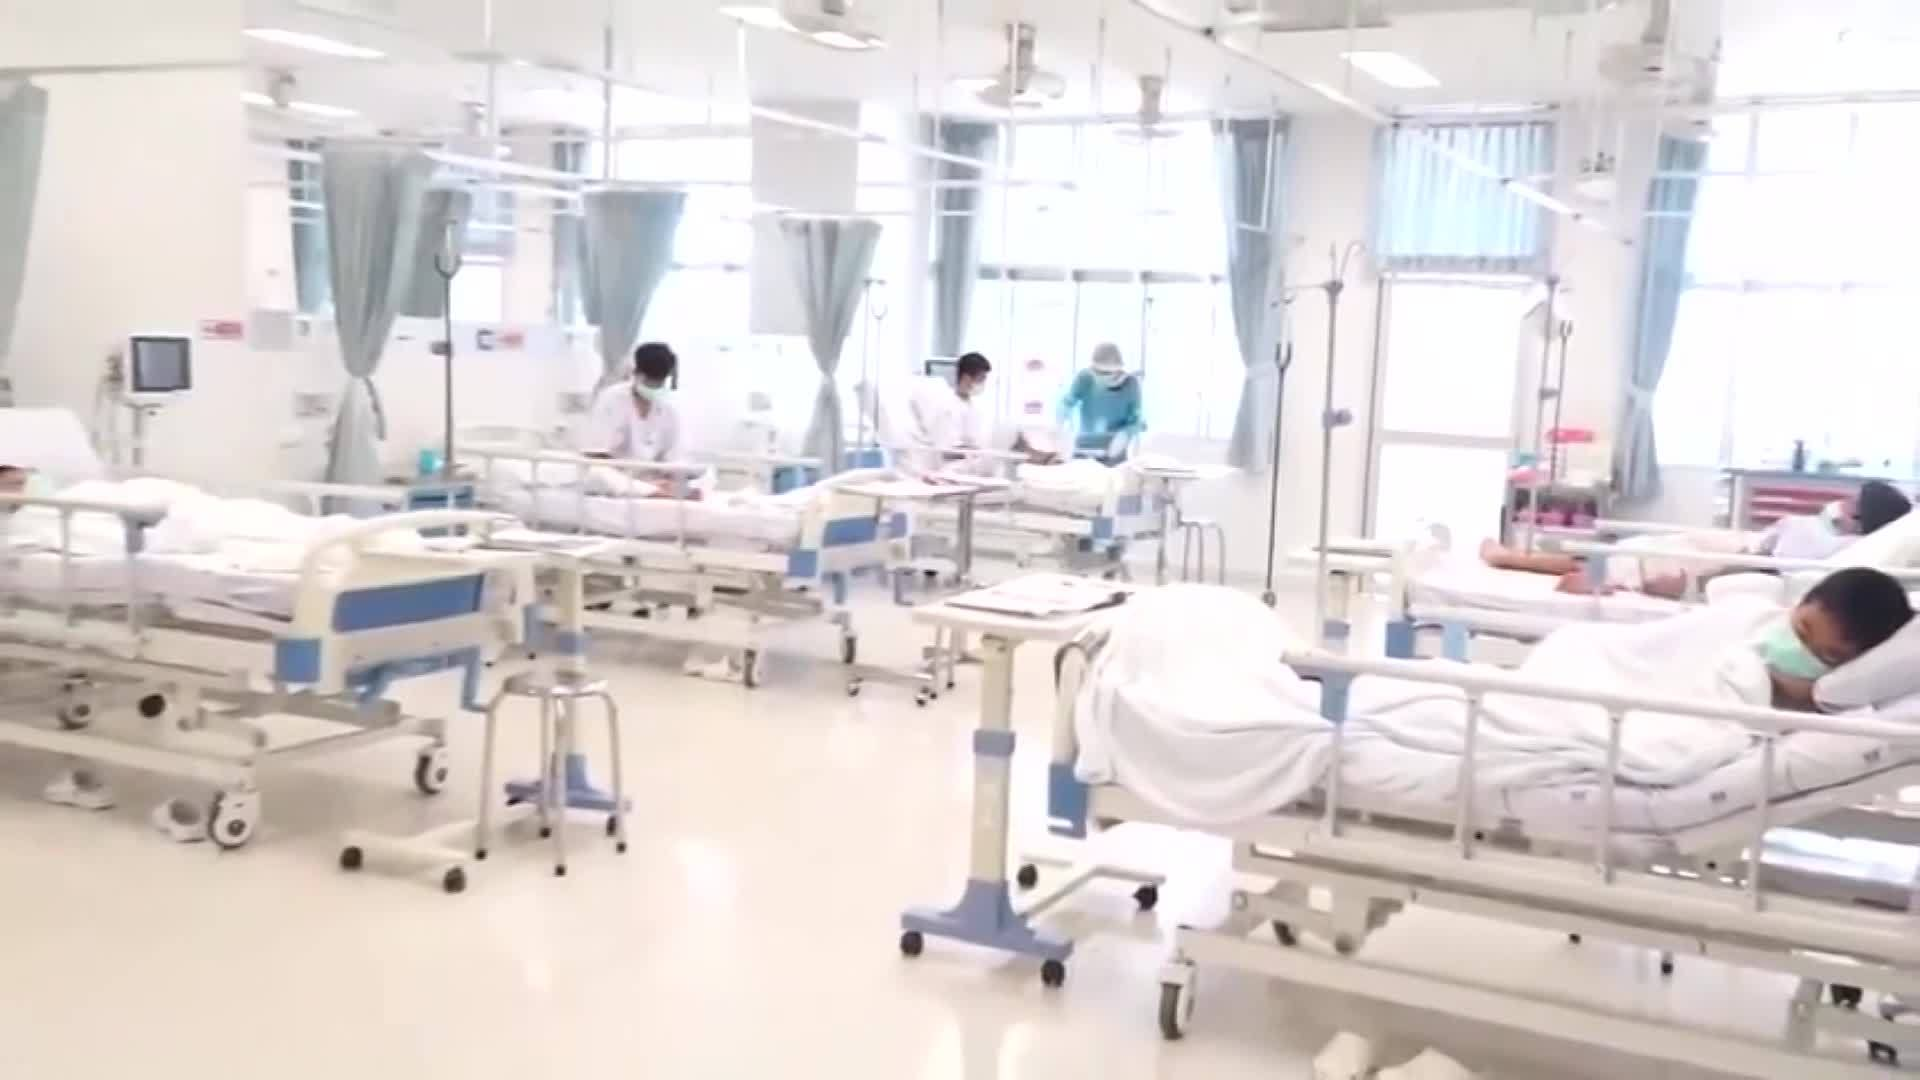 Video shows rescued Thai boys in hospital